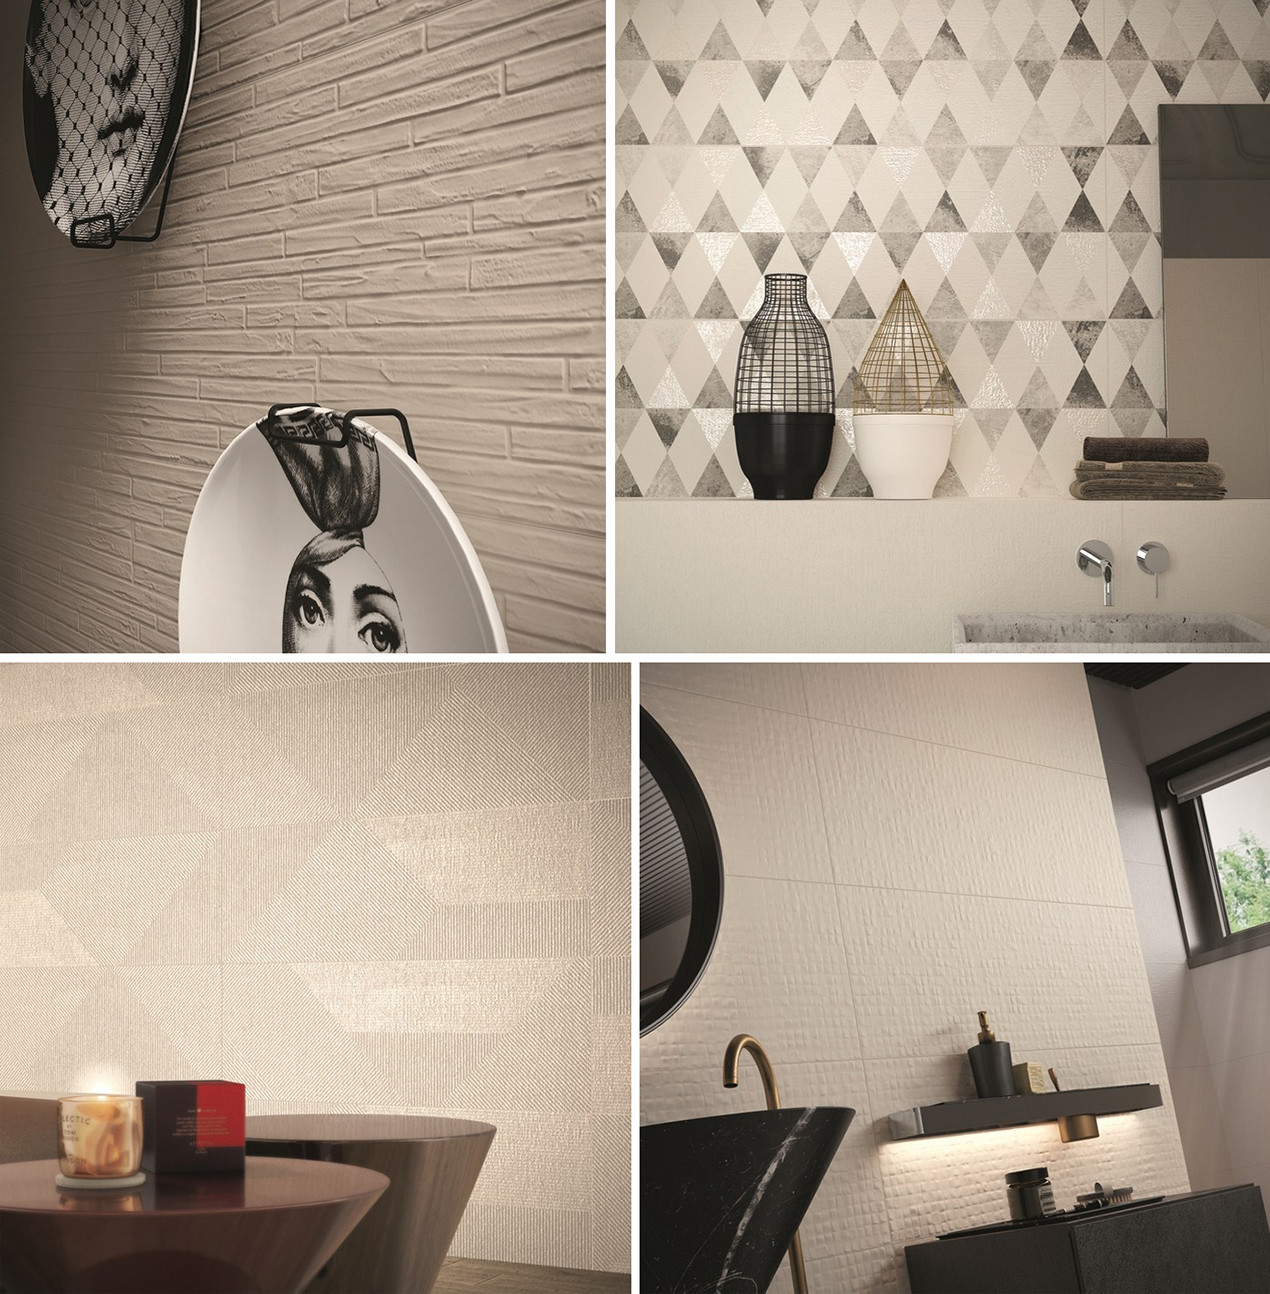 ESSENTIA Ceramic Tiles by Love Ceramic Tiles